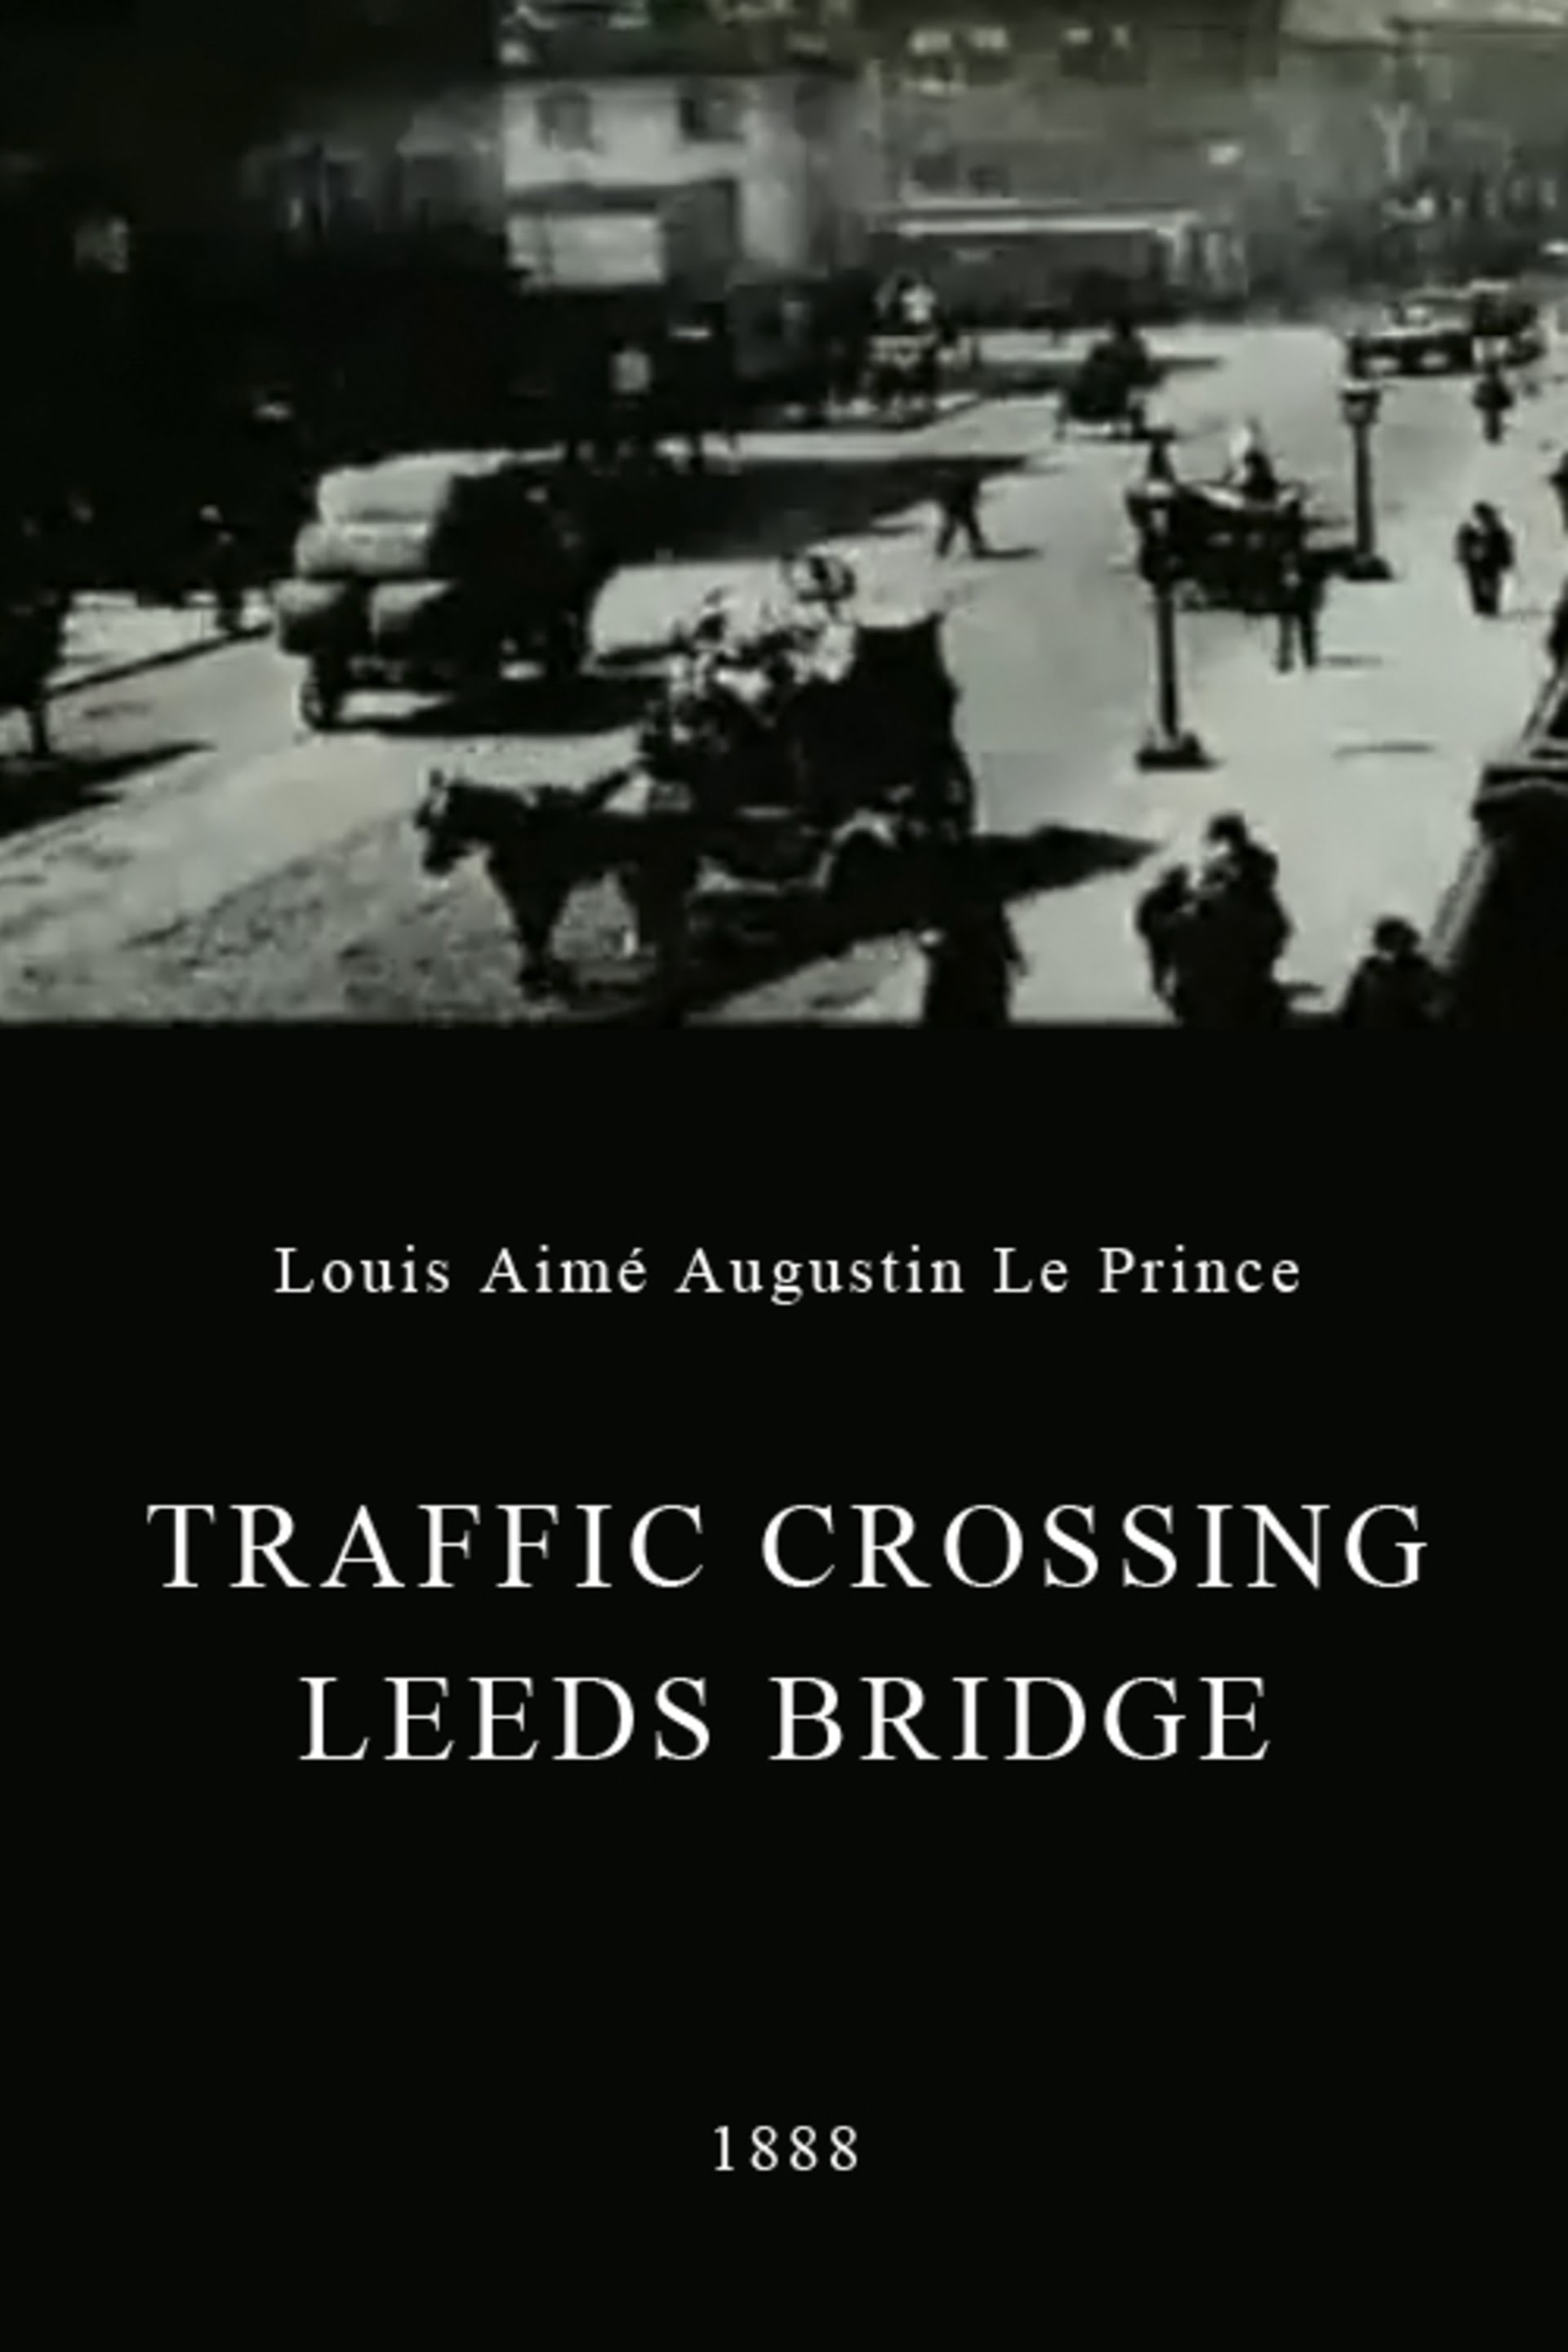 Traffic Crossing Leeds Bridge 1888 Imdb